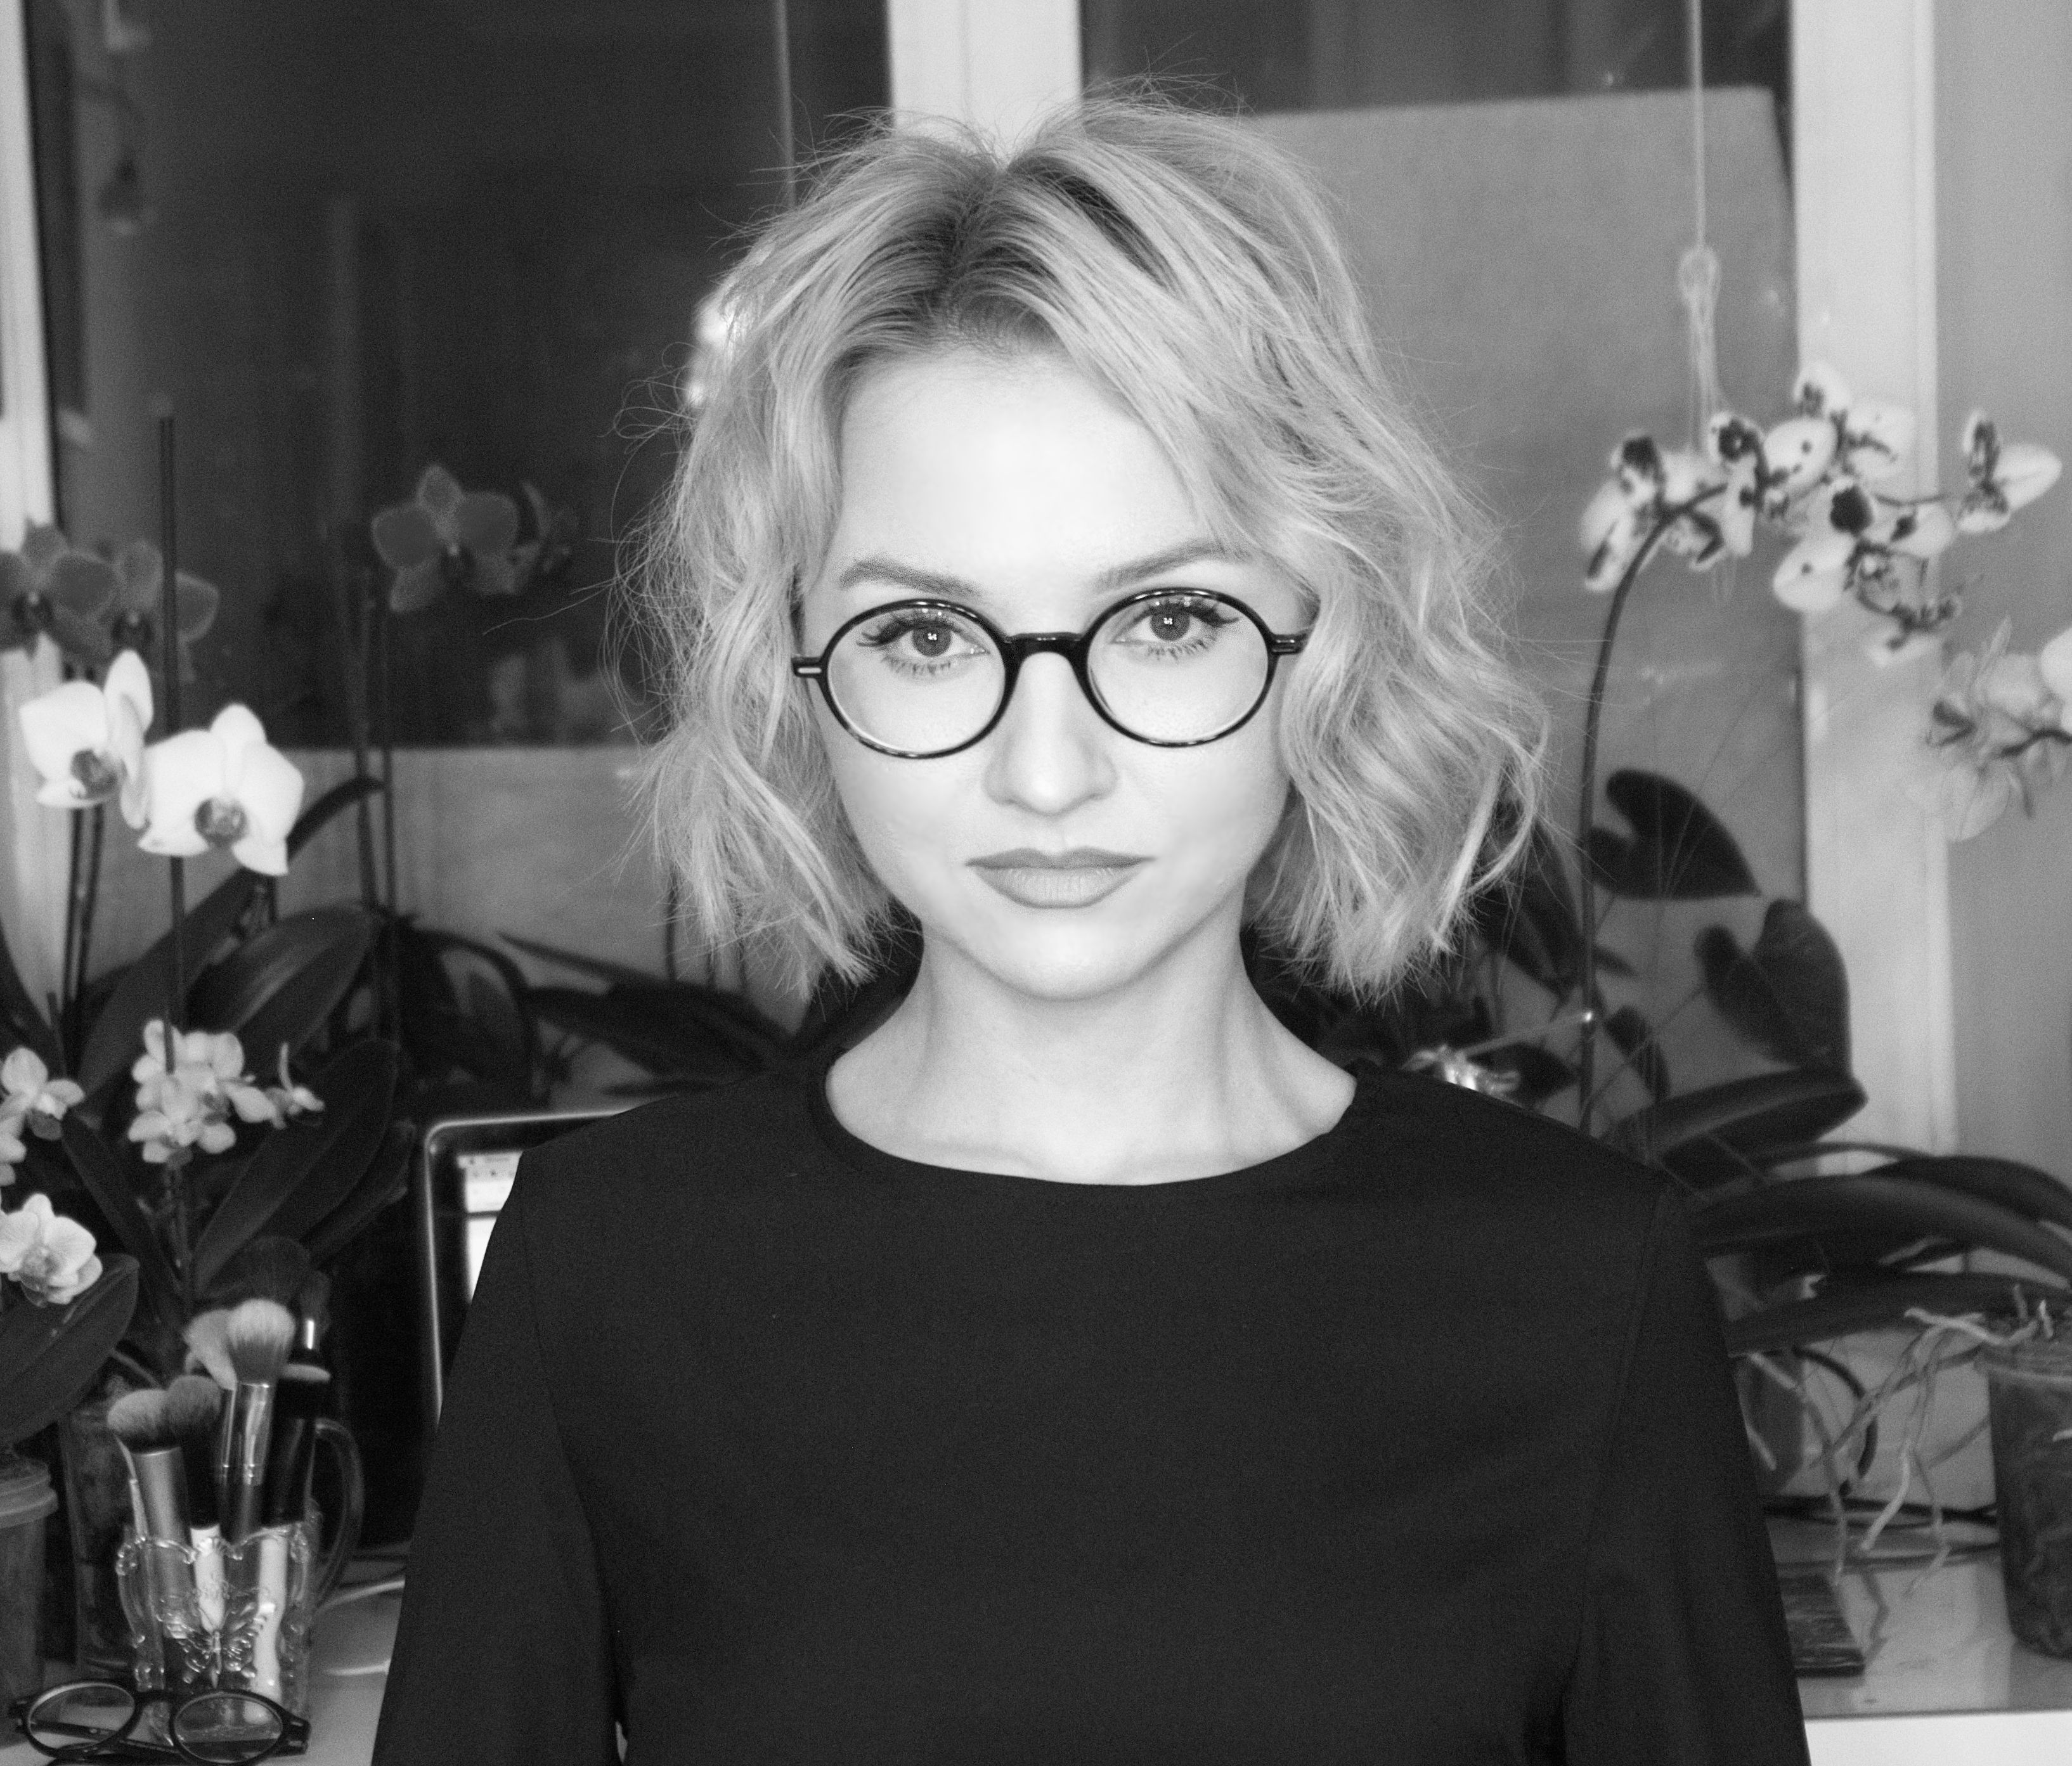 Alyona Yarushina Aly Art Glasses Bob Wavy Hair Haircut Curly Blond Blonde Balayage Light Hair Style Fash Beauty Youtubers Light Hair Makeup History